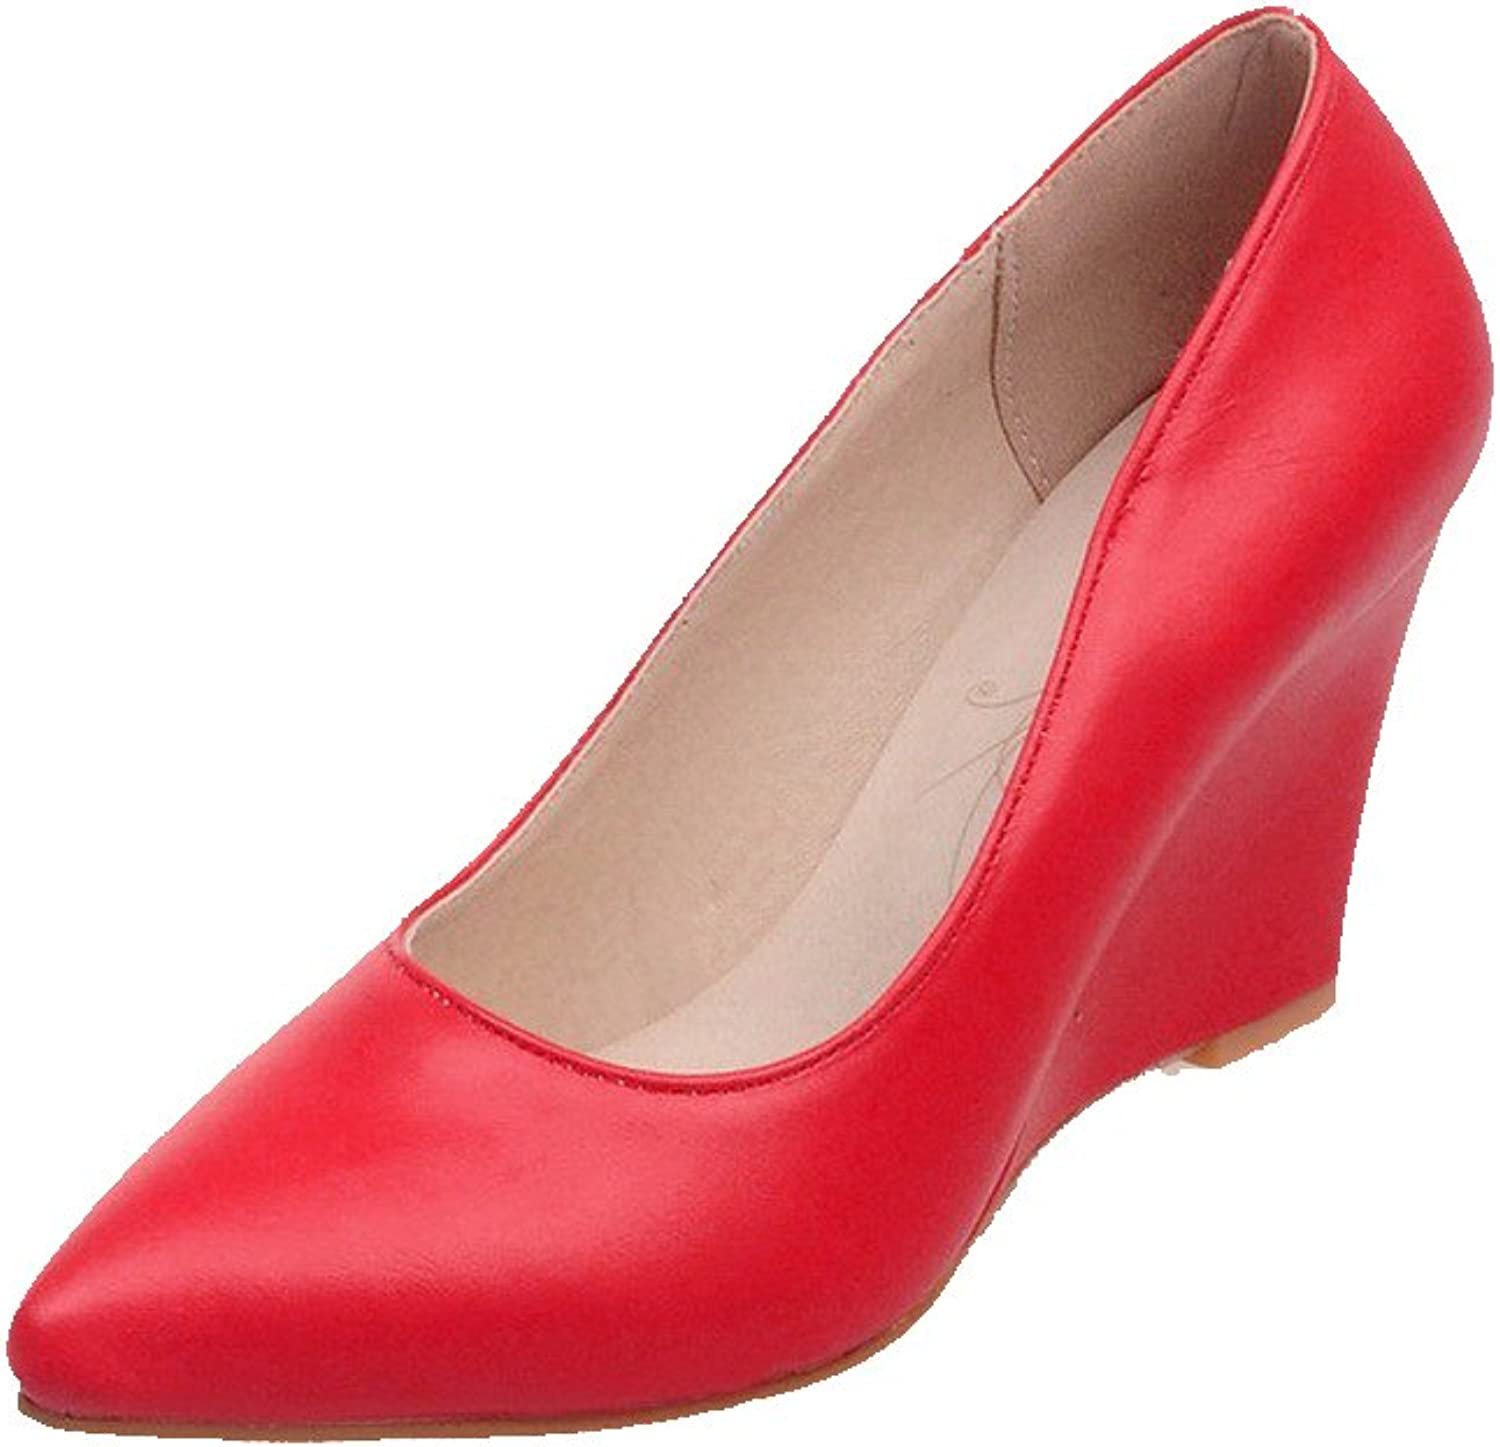 AmoonyFashion Women's Solid PU High-Heels Pointed Closed Toe Pull-on Pumps-shoes